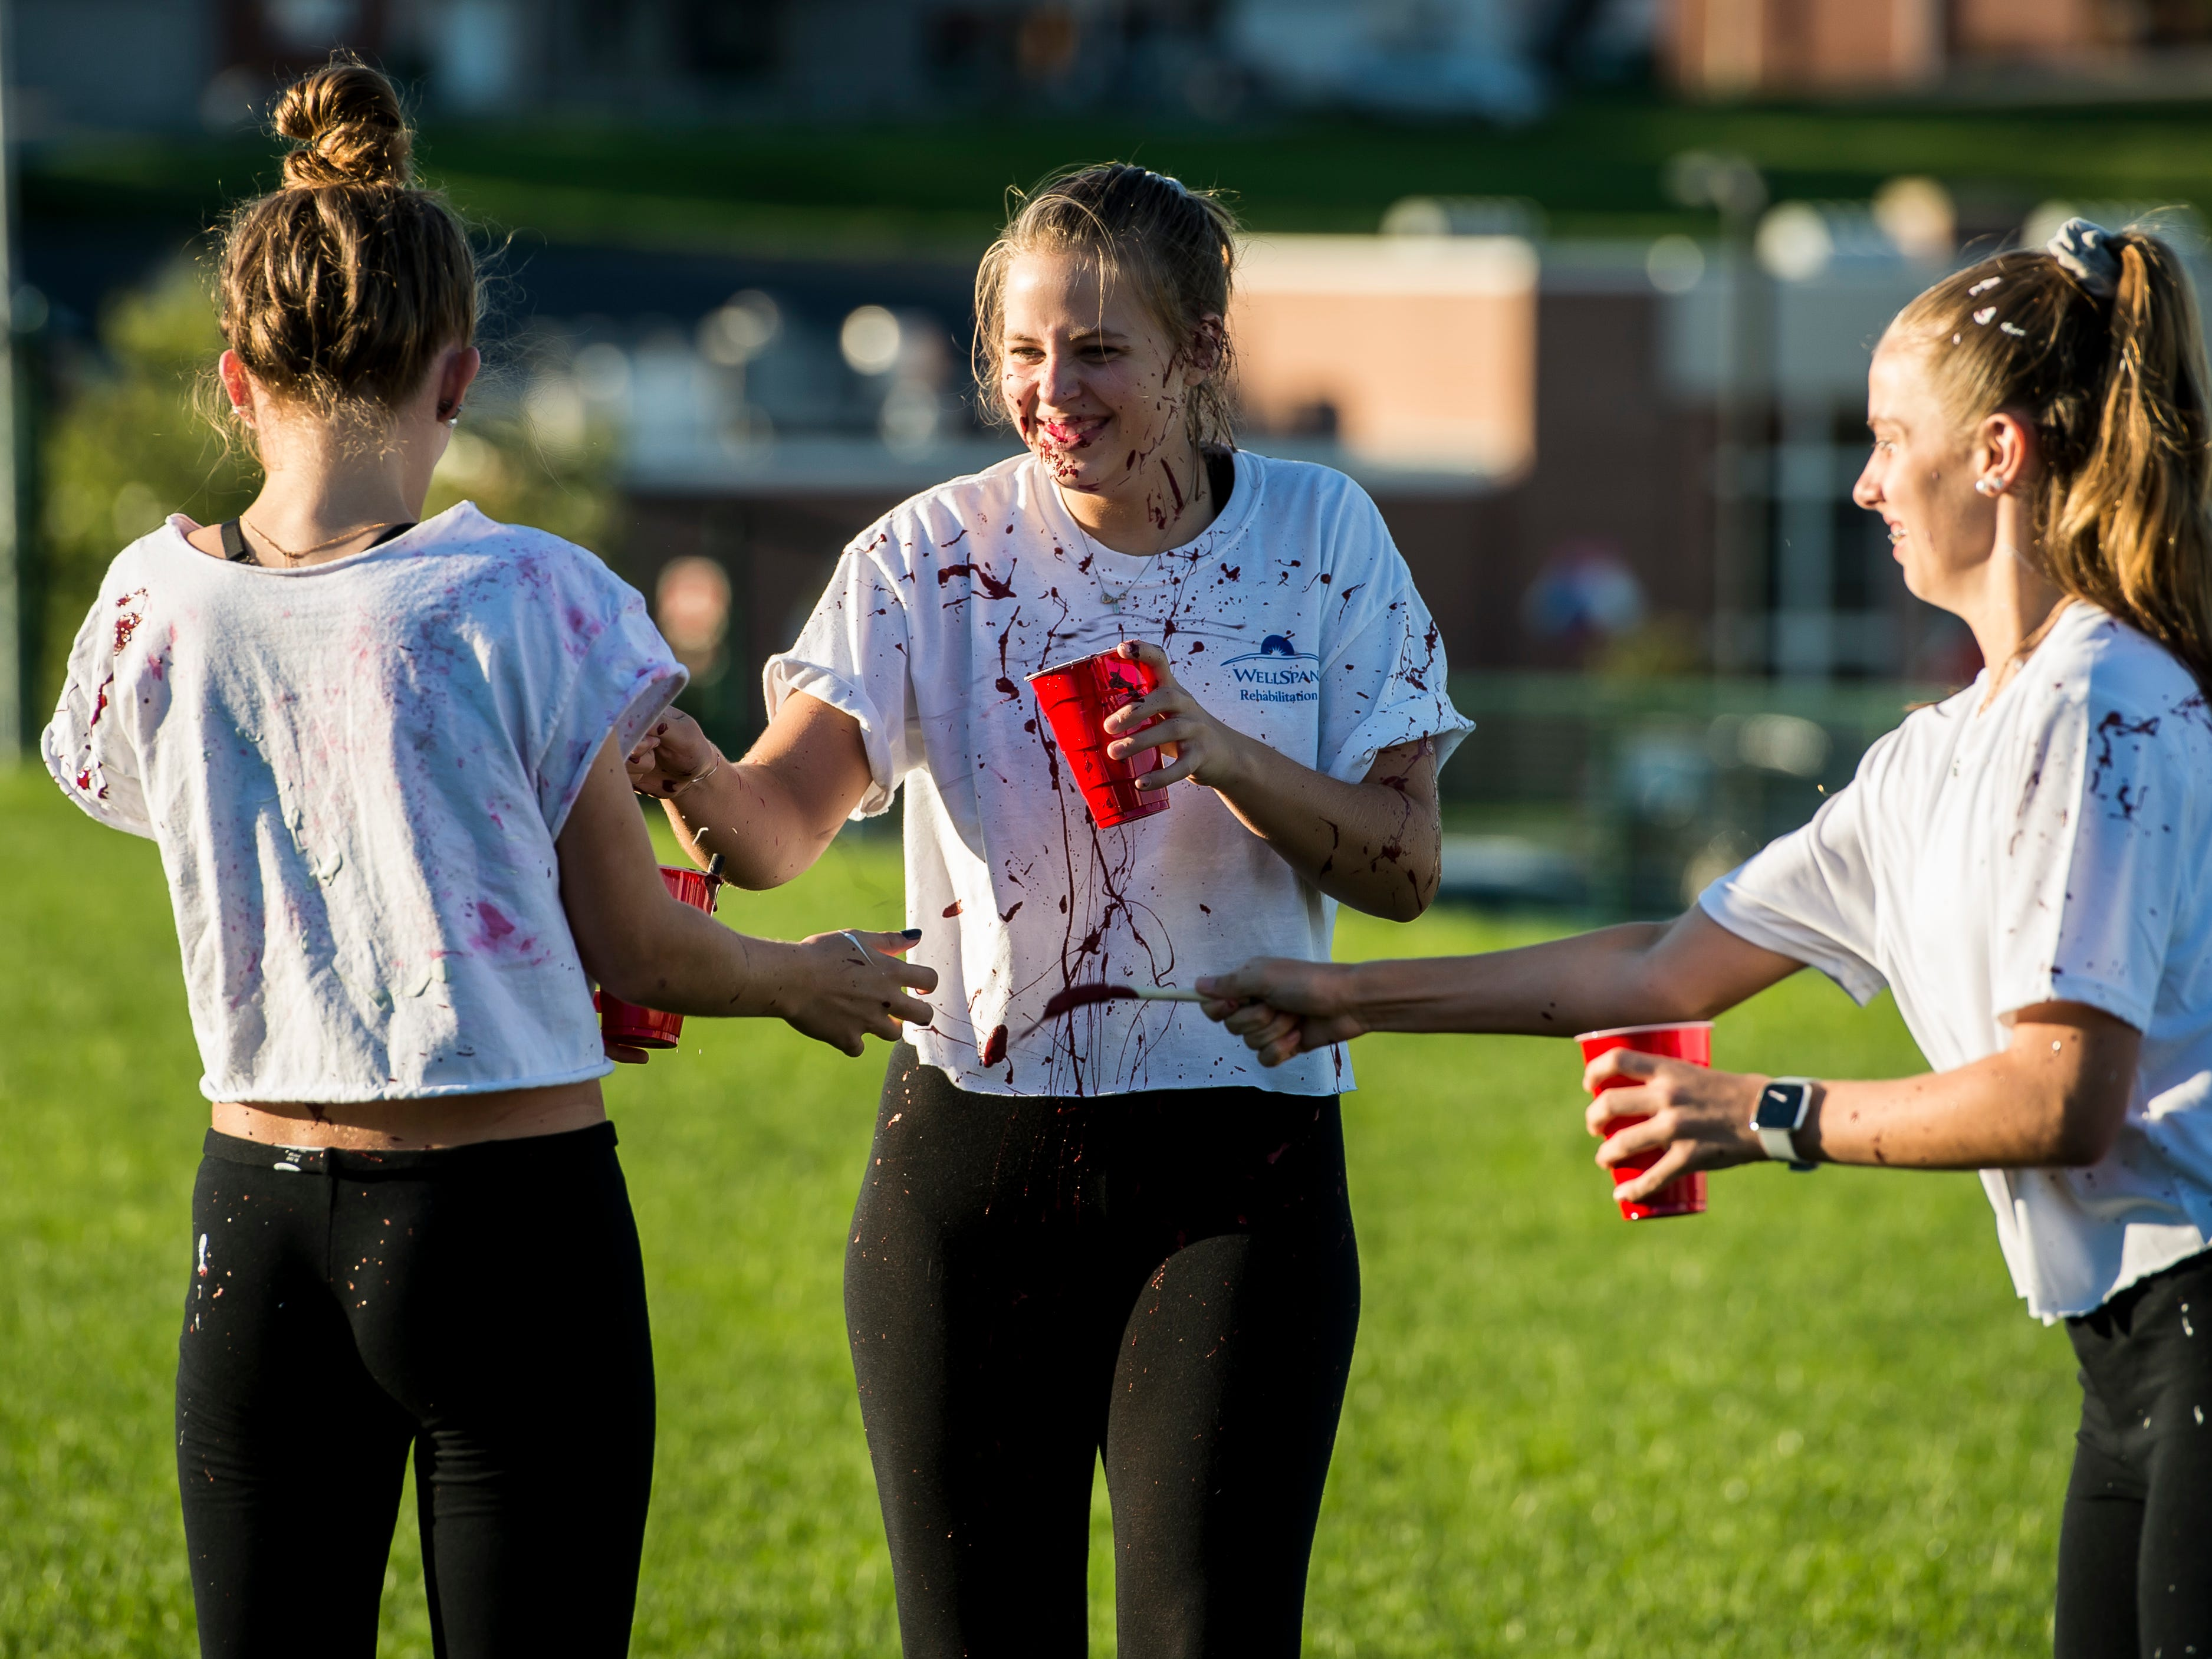 """Gettysburg High School students cover each other in paint during a """"splatter-fest"""" prior to the football game against Eastern York on Friday, September 28, 2018. The fest helped raise money for the school's Mini-THON."""